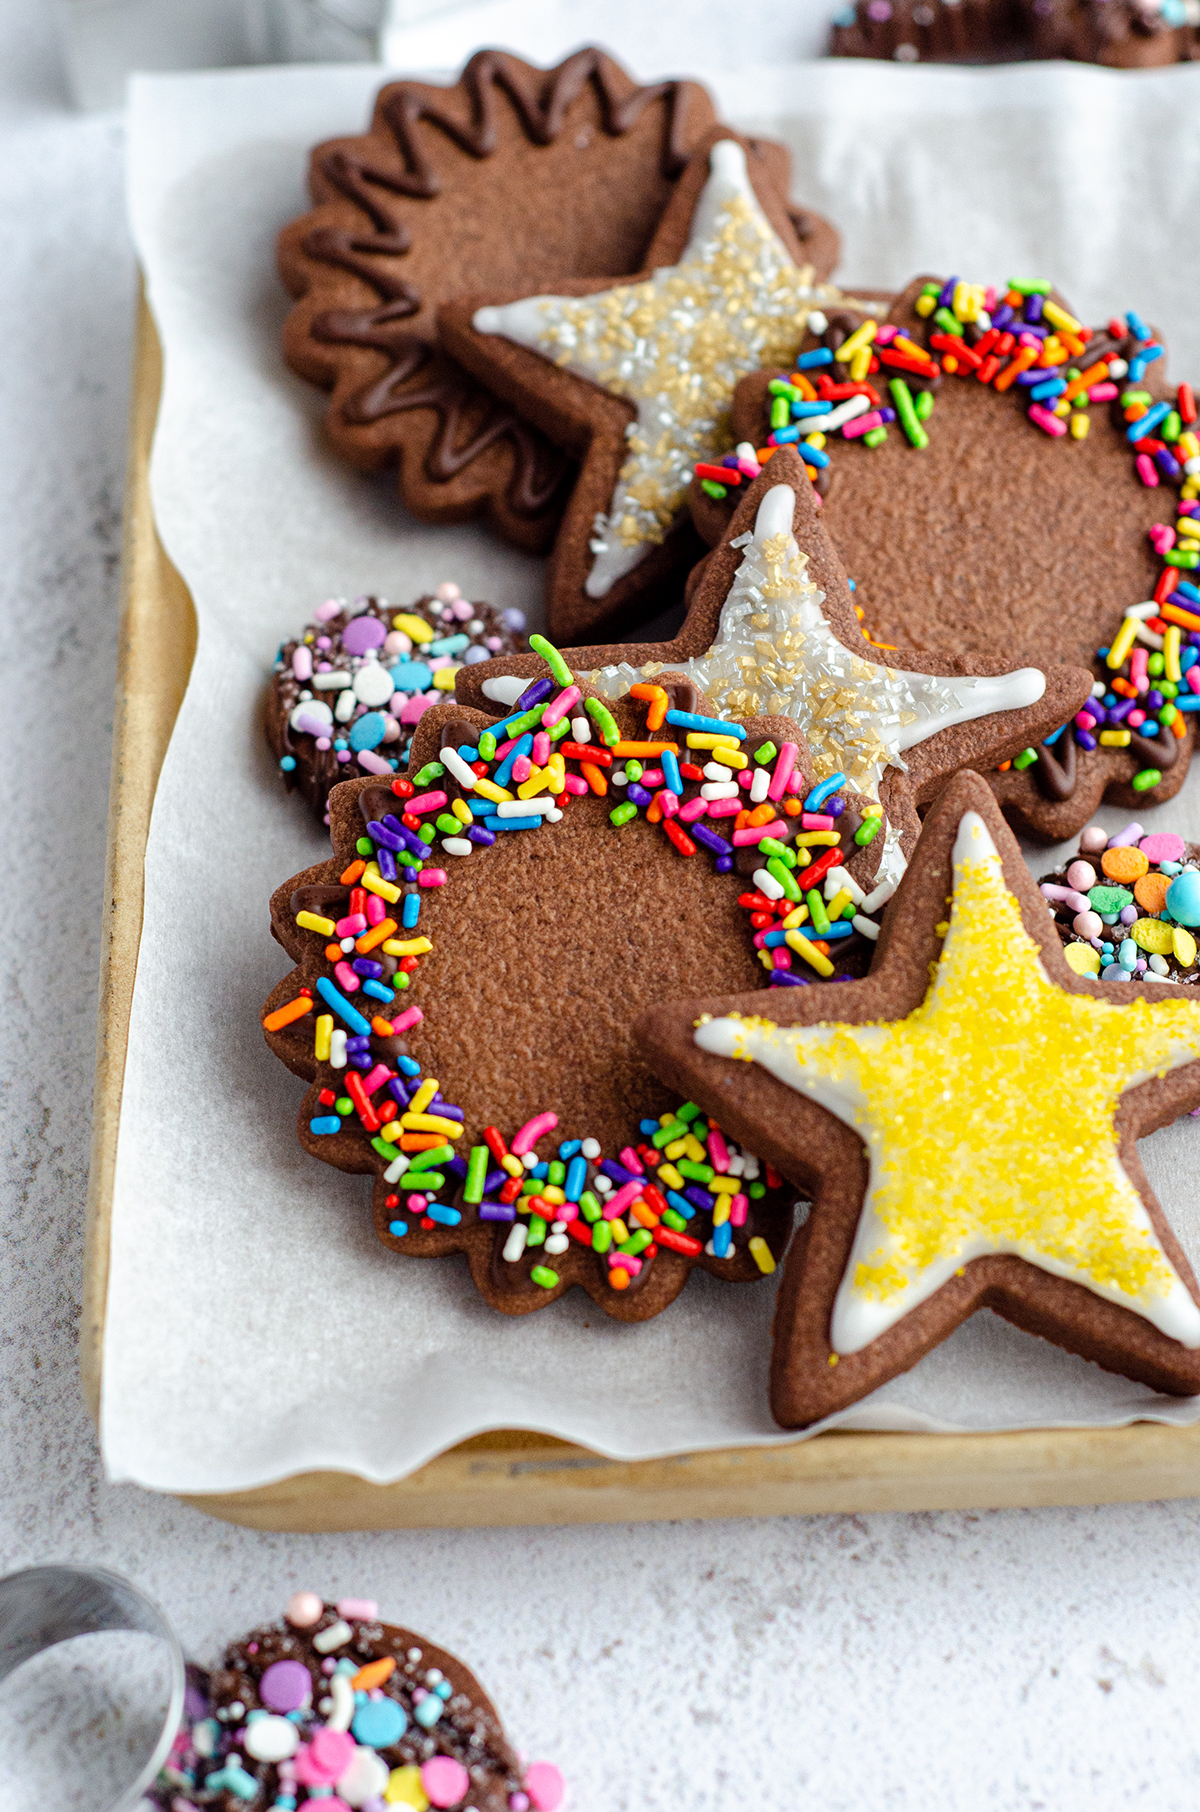 plate of chocolate cut-out sugar cookies decorated with icing and spirnkles